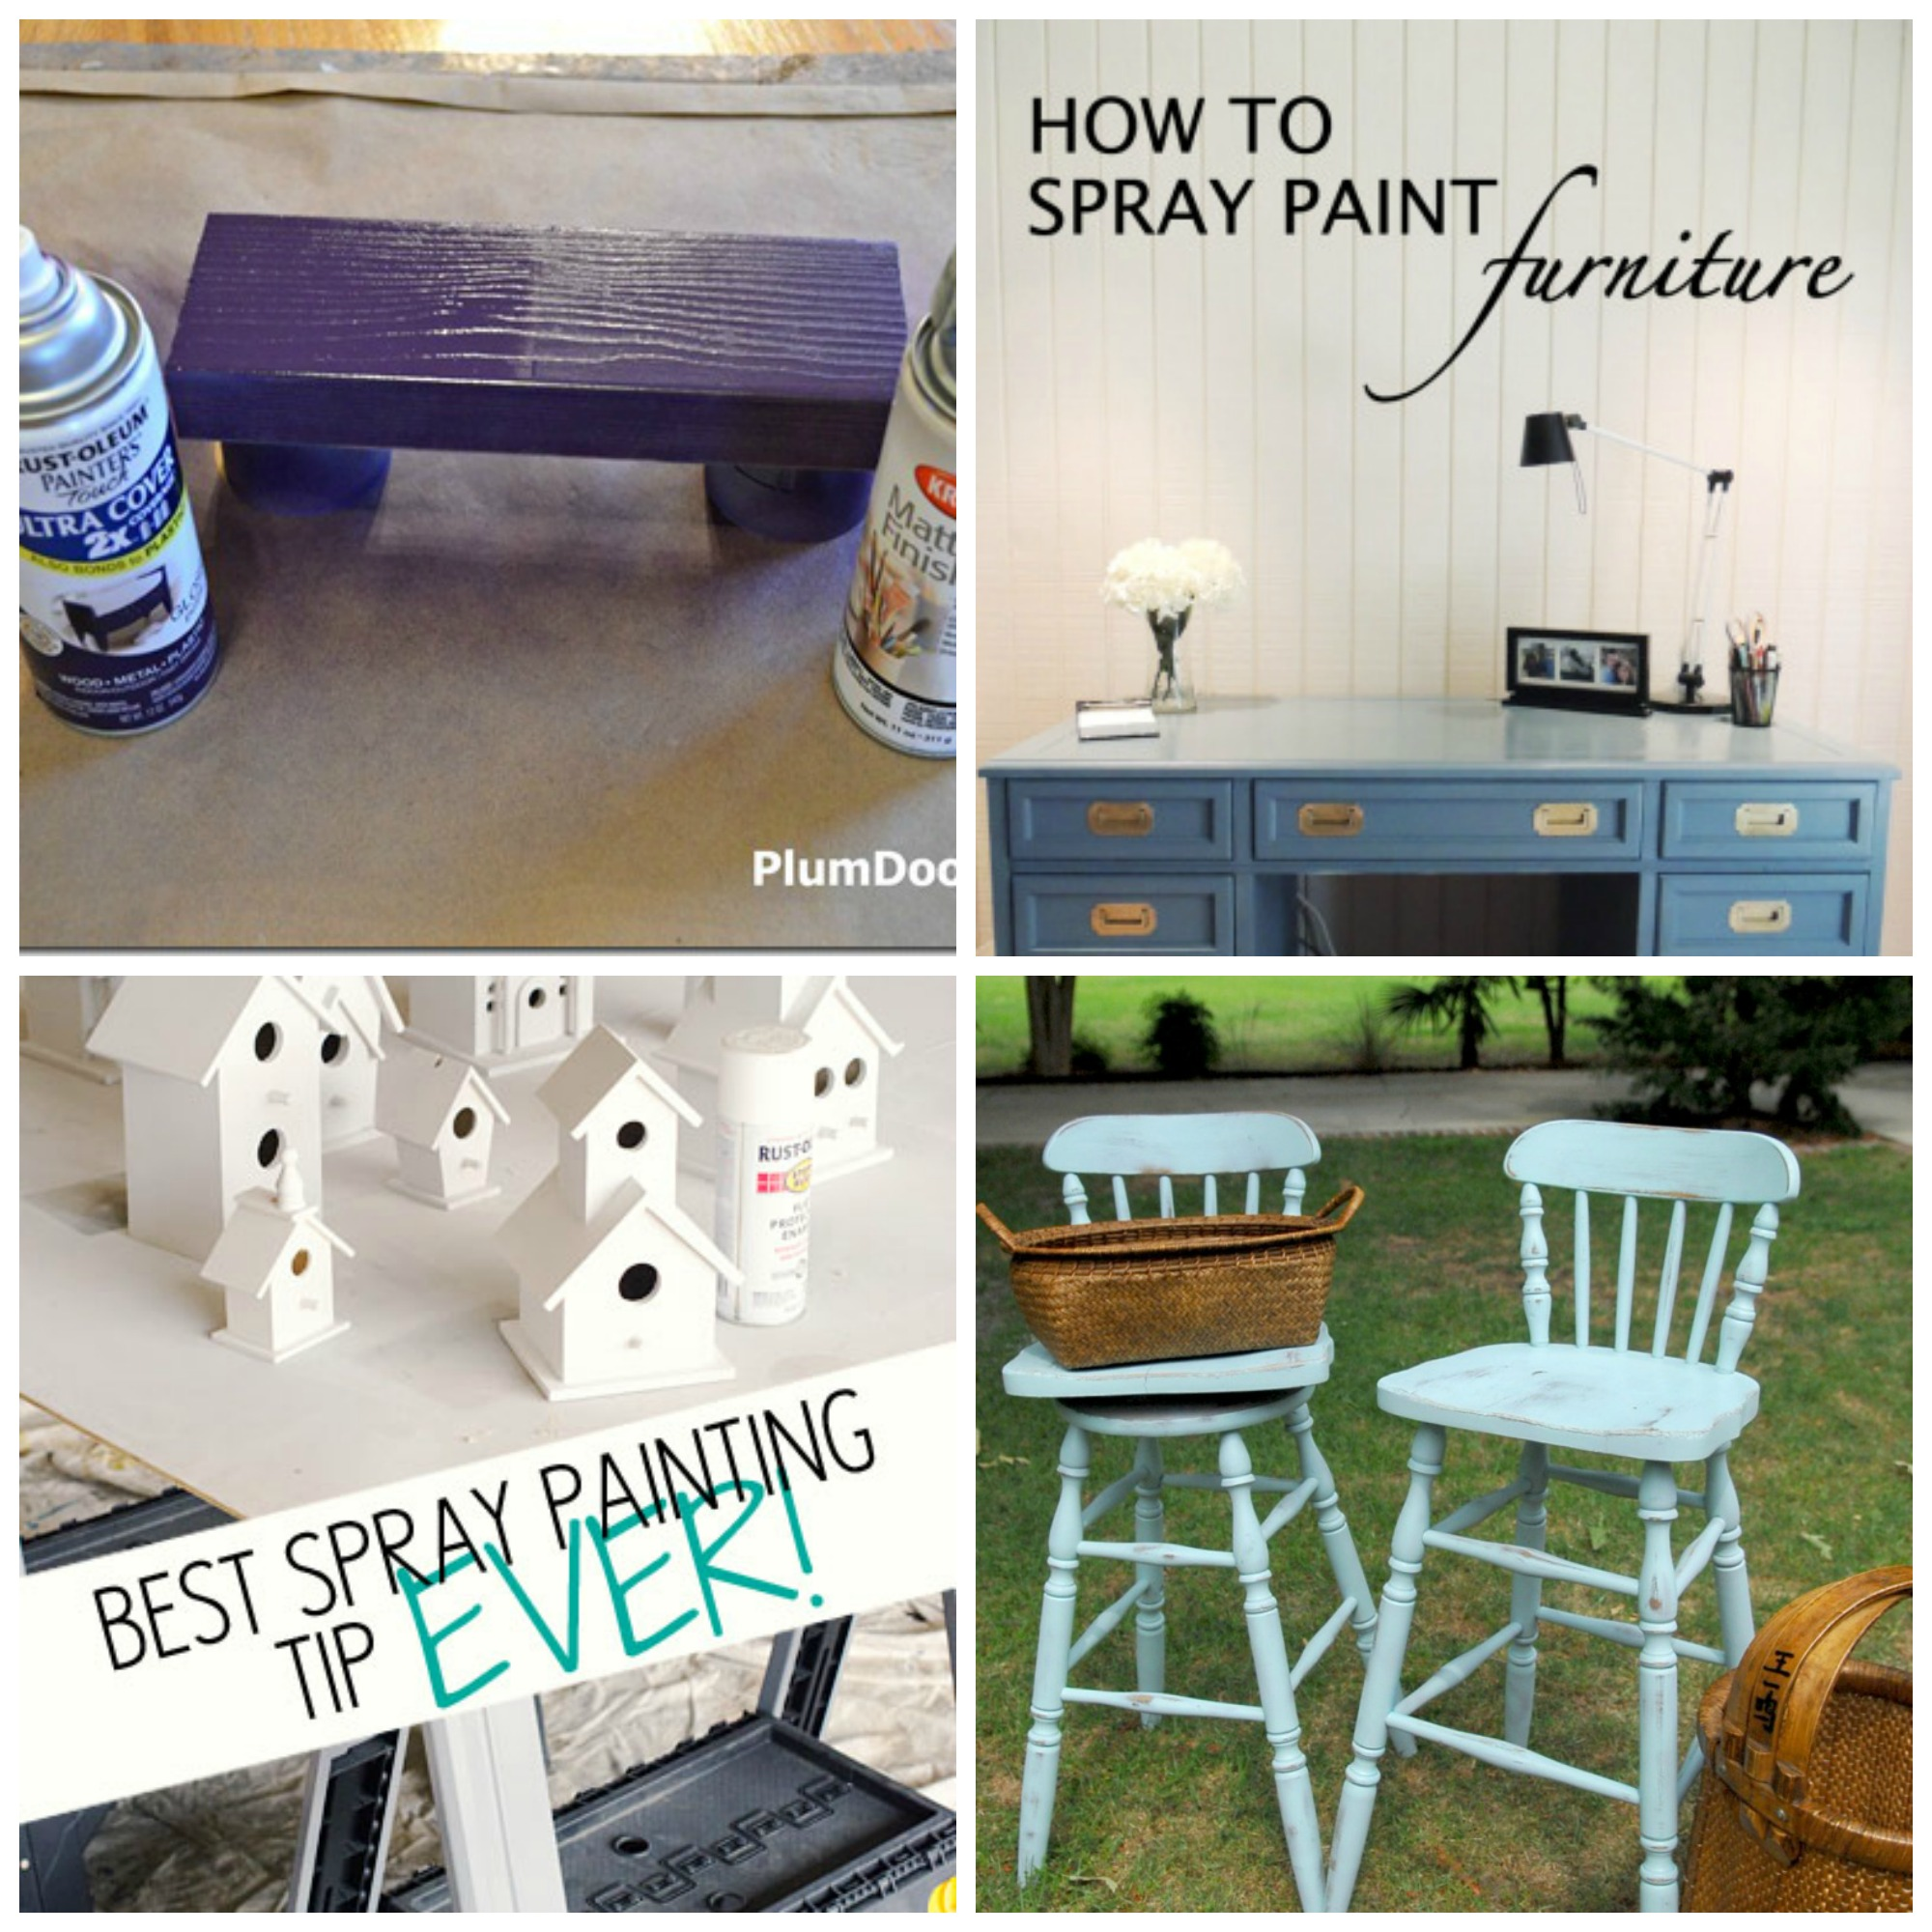 60 amazing spray paint projects four great spray painting tips. Black Bedroom Furniture Sets. Home Design Ideas